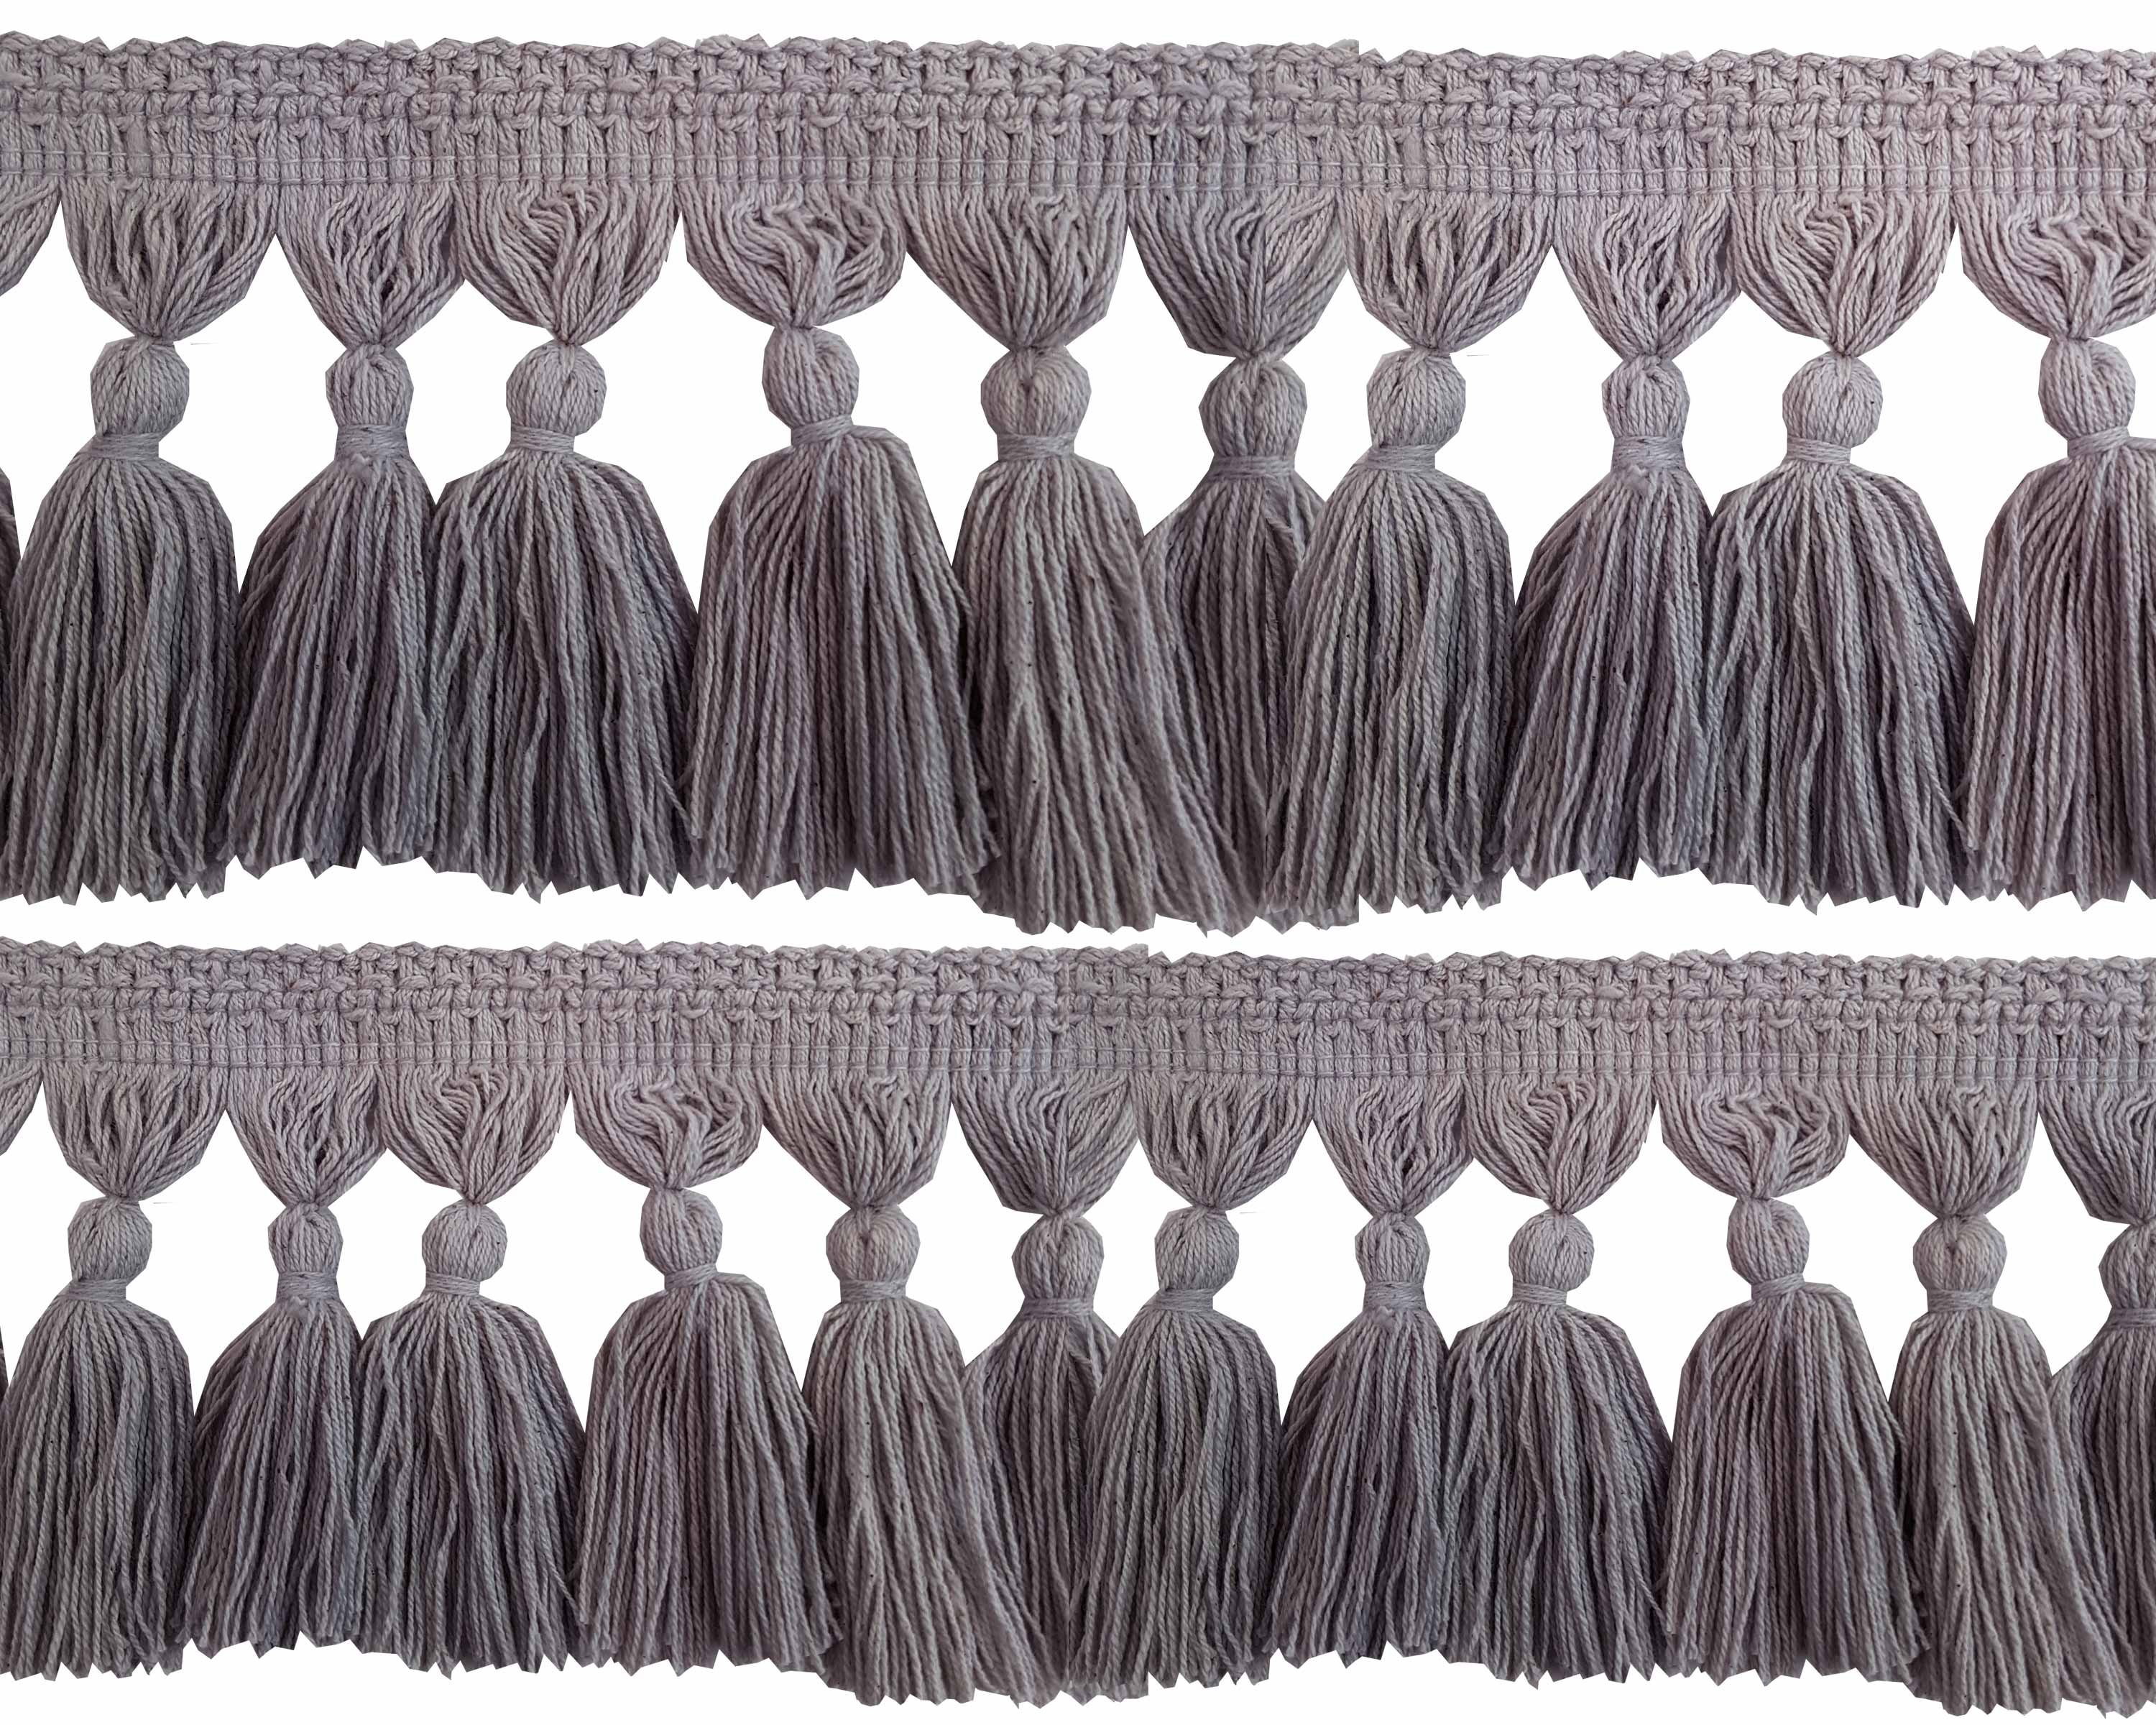 Natural Cotton Tassel Fringing - Light Grey 9.5cm long price is per metre